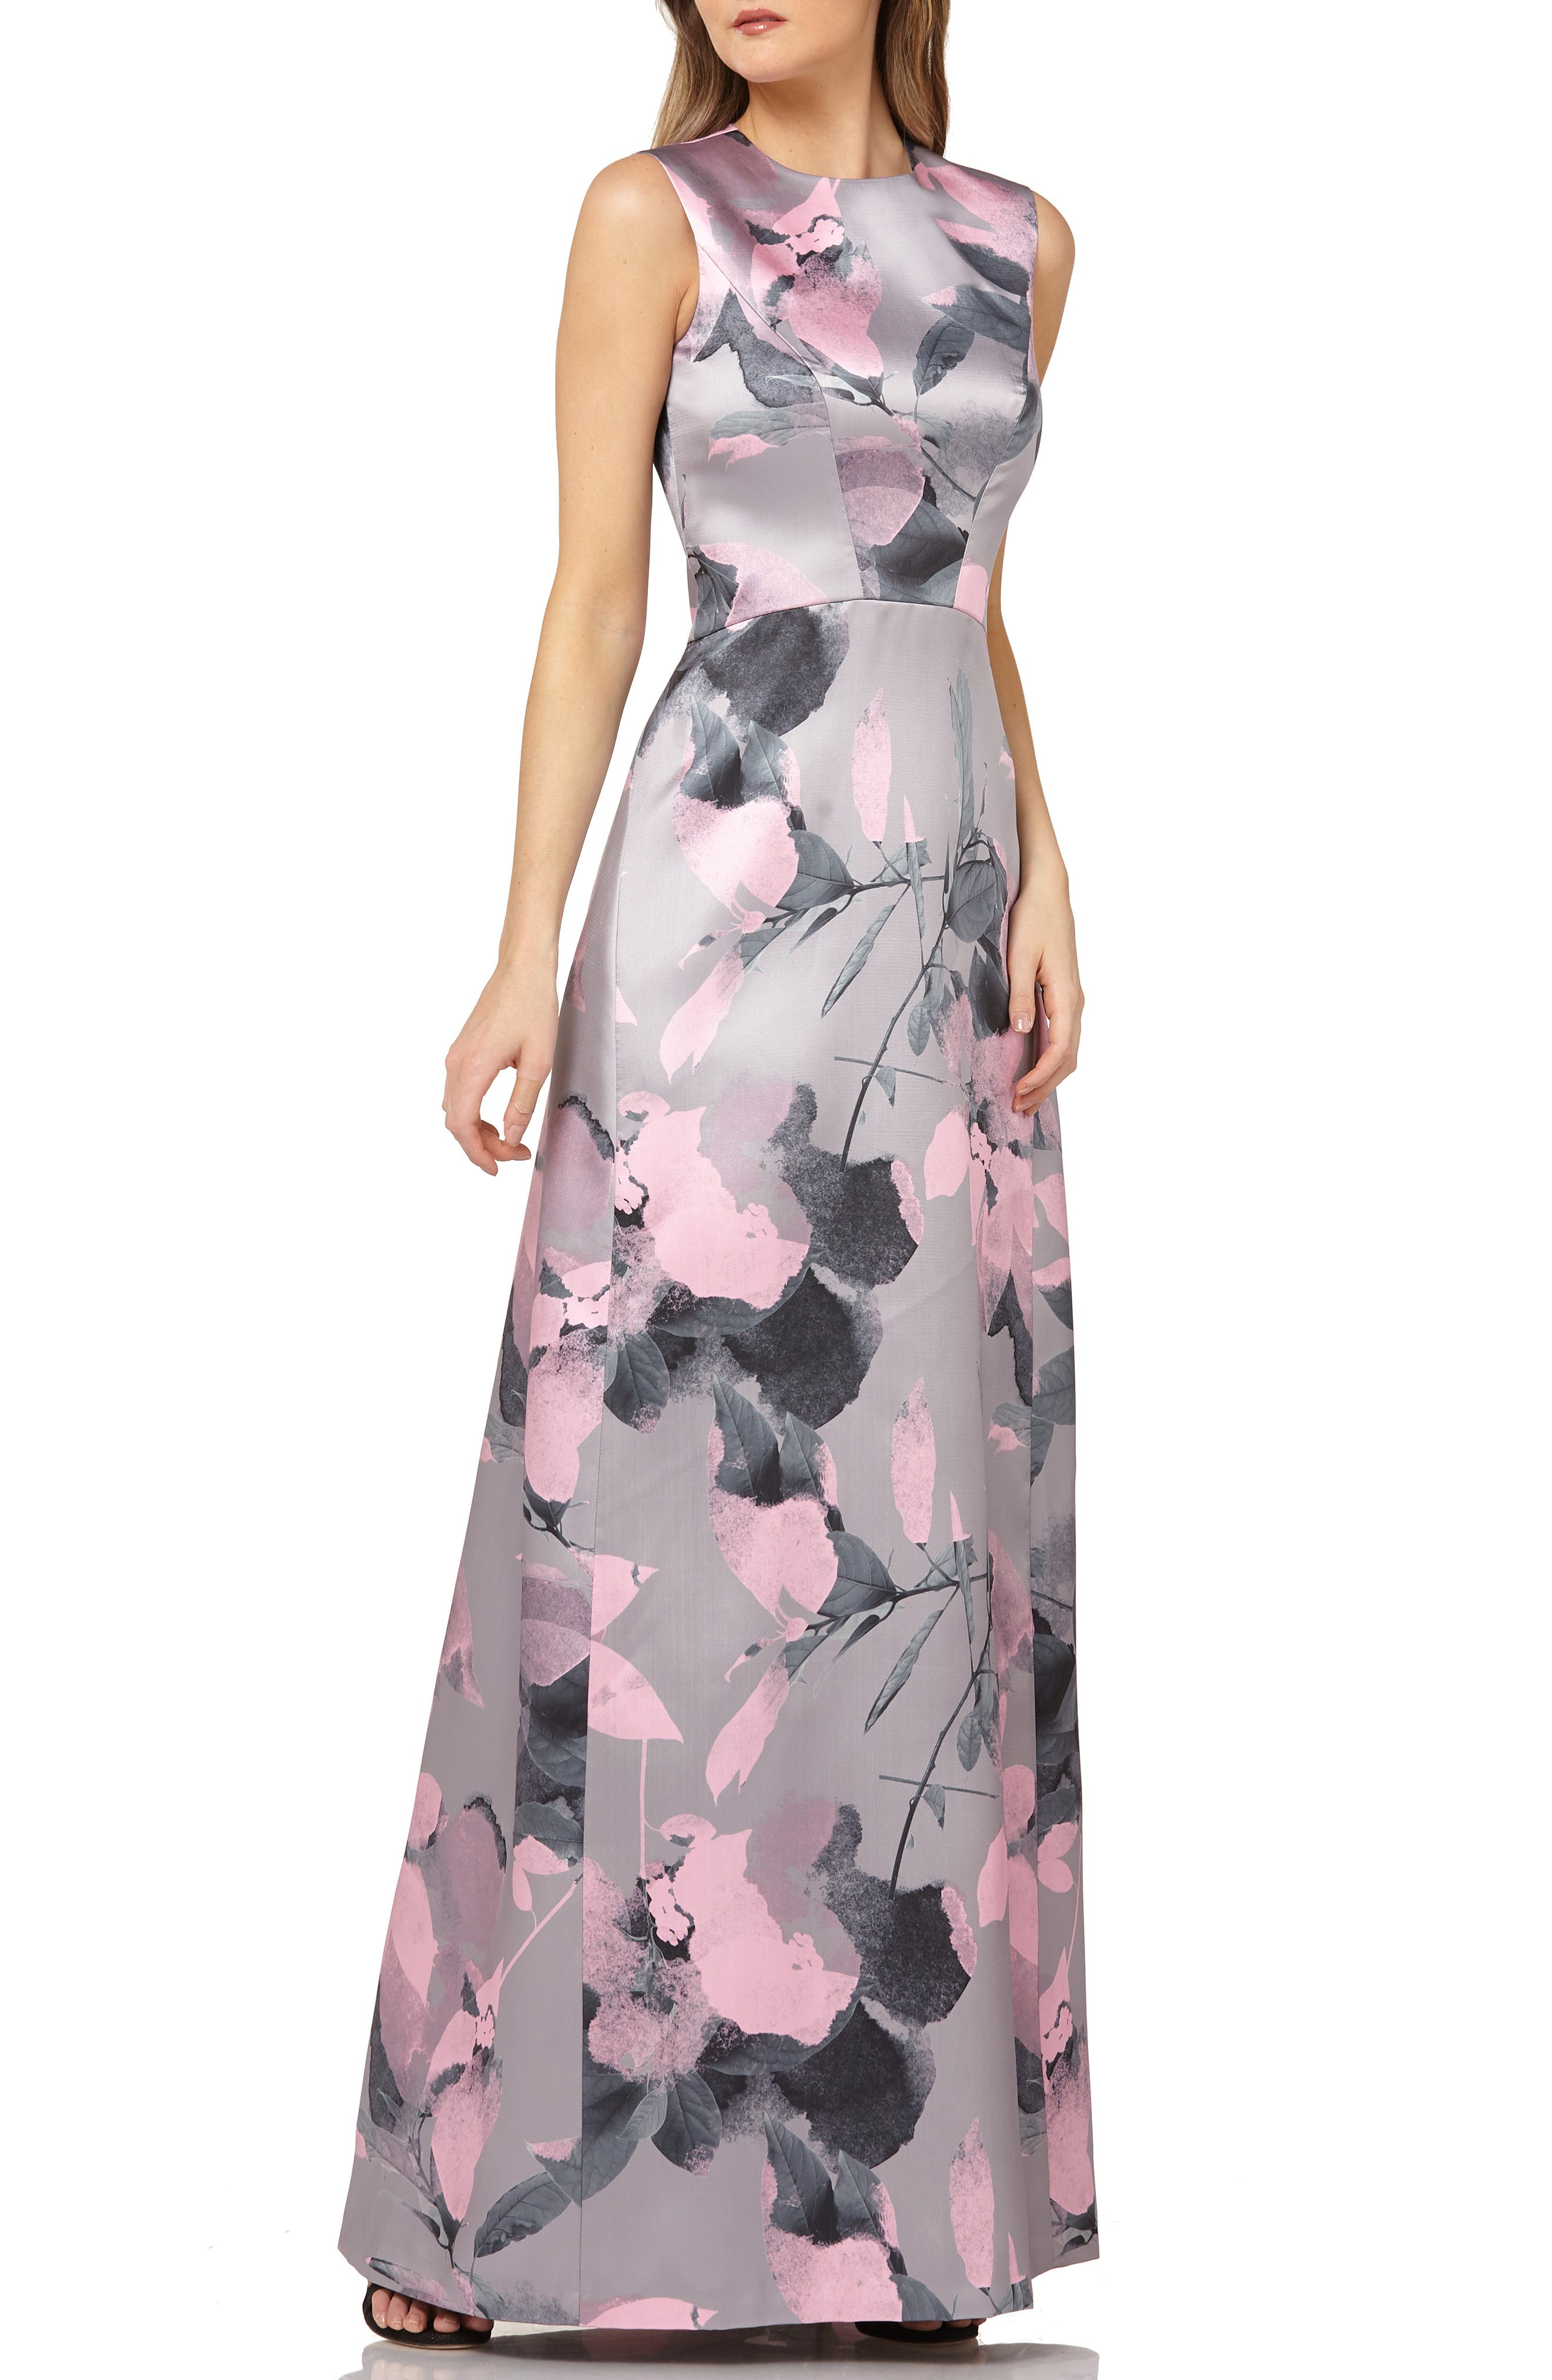 KAY UNGER Sleeveless Floral-Print Mikado Gown in Pink/ Gray